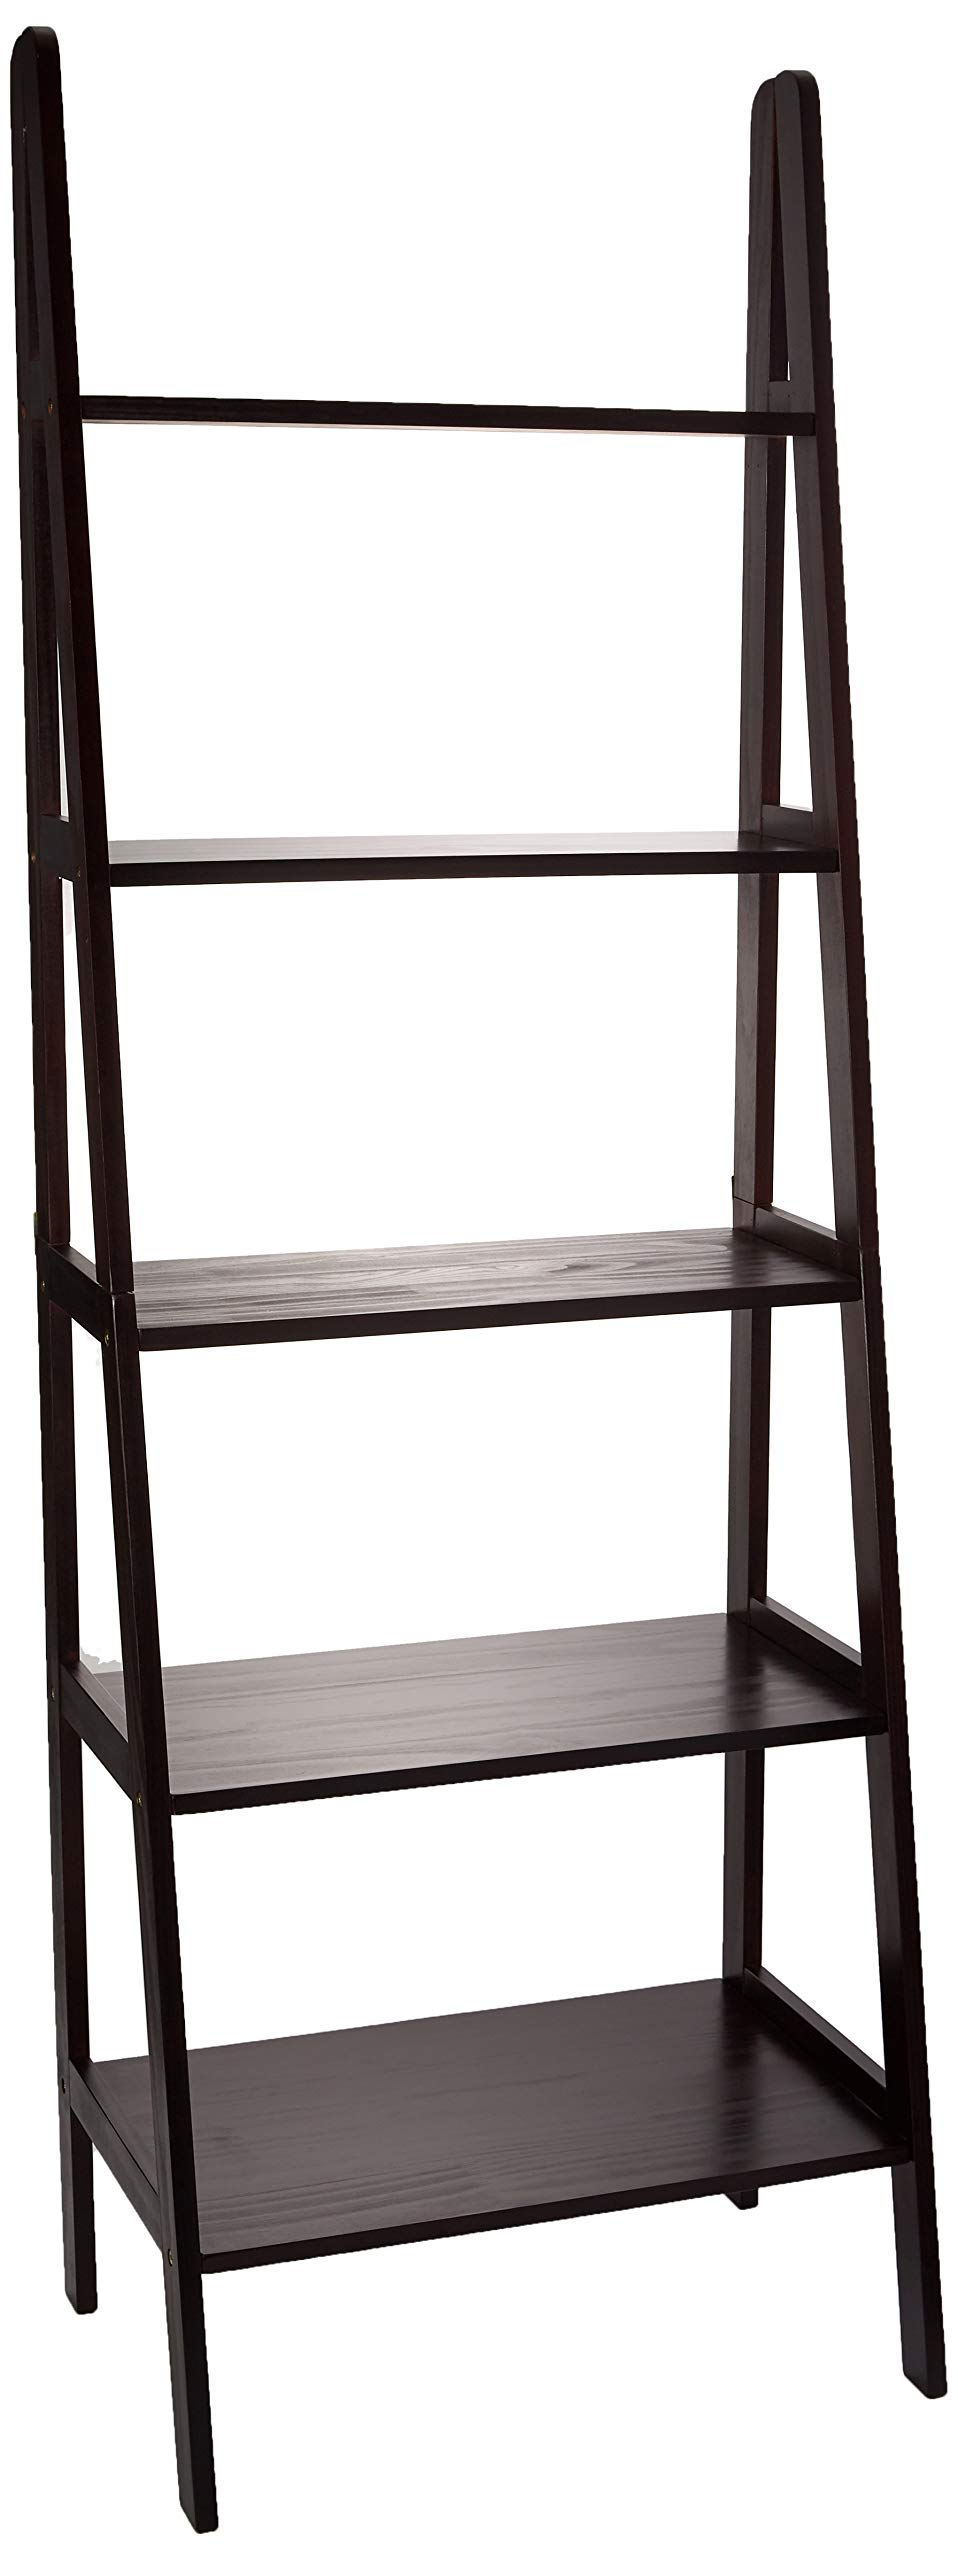 Casual Home 176-53 5-Shelf Ladder Bookcase, Espresso by Casual Home